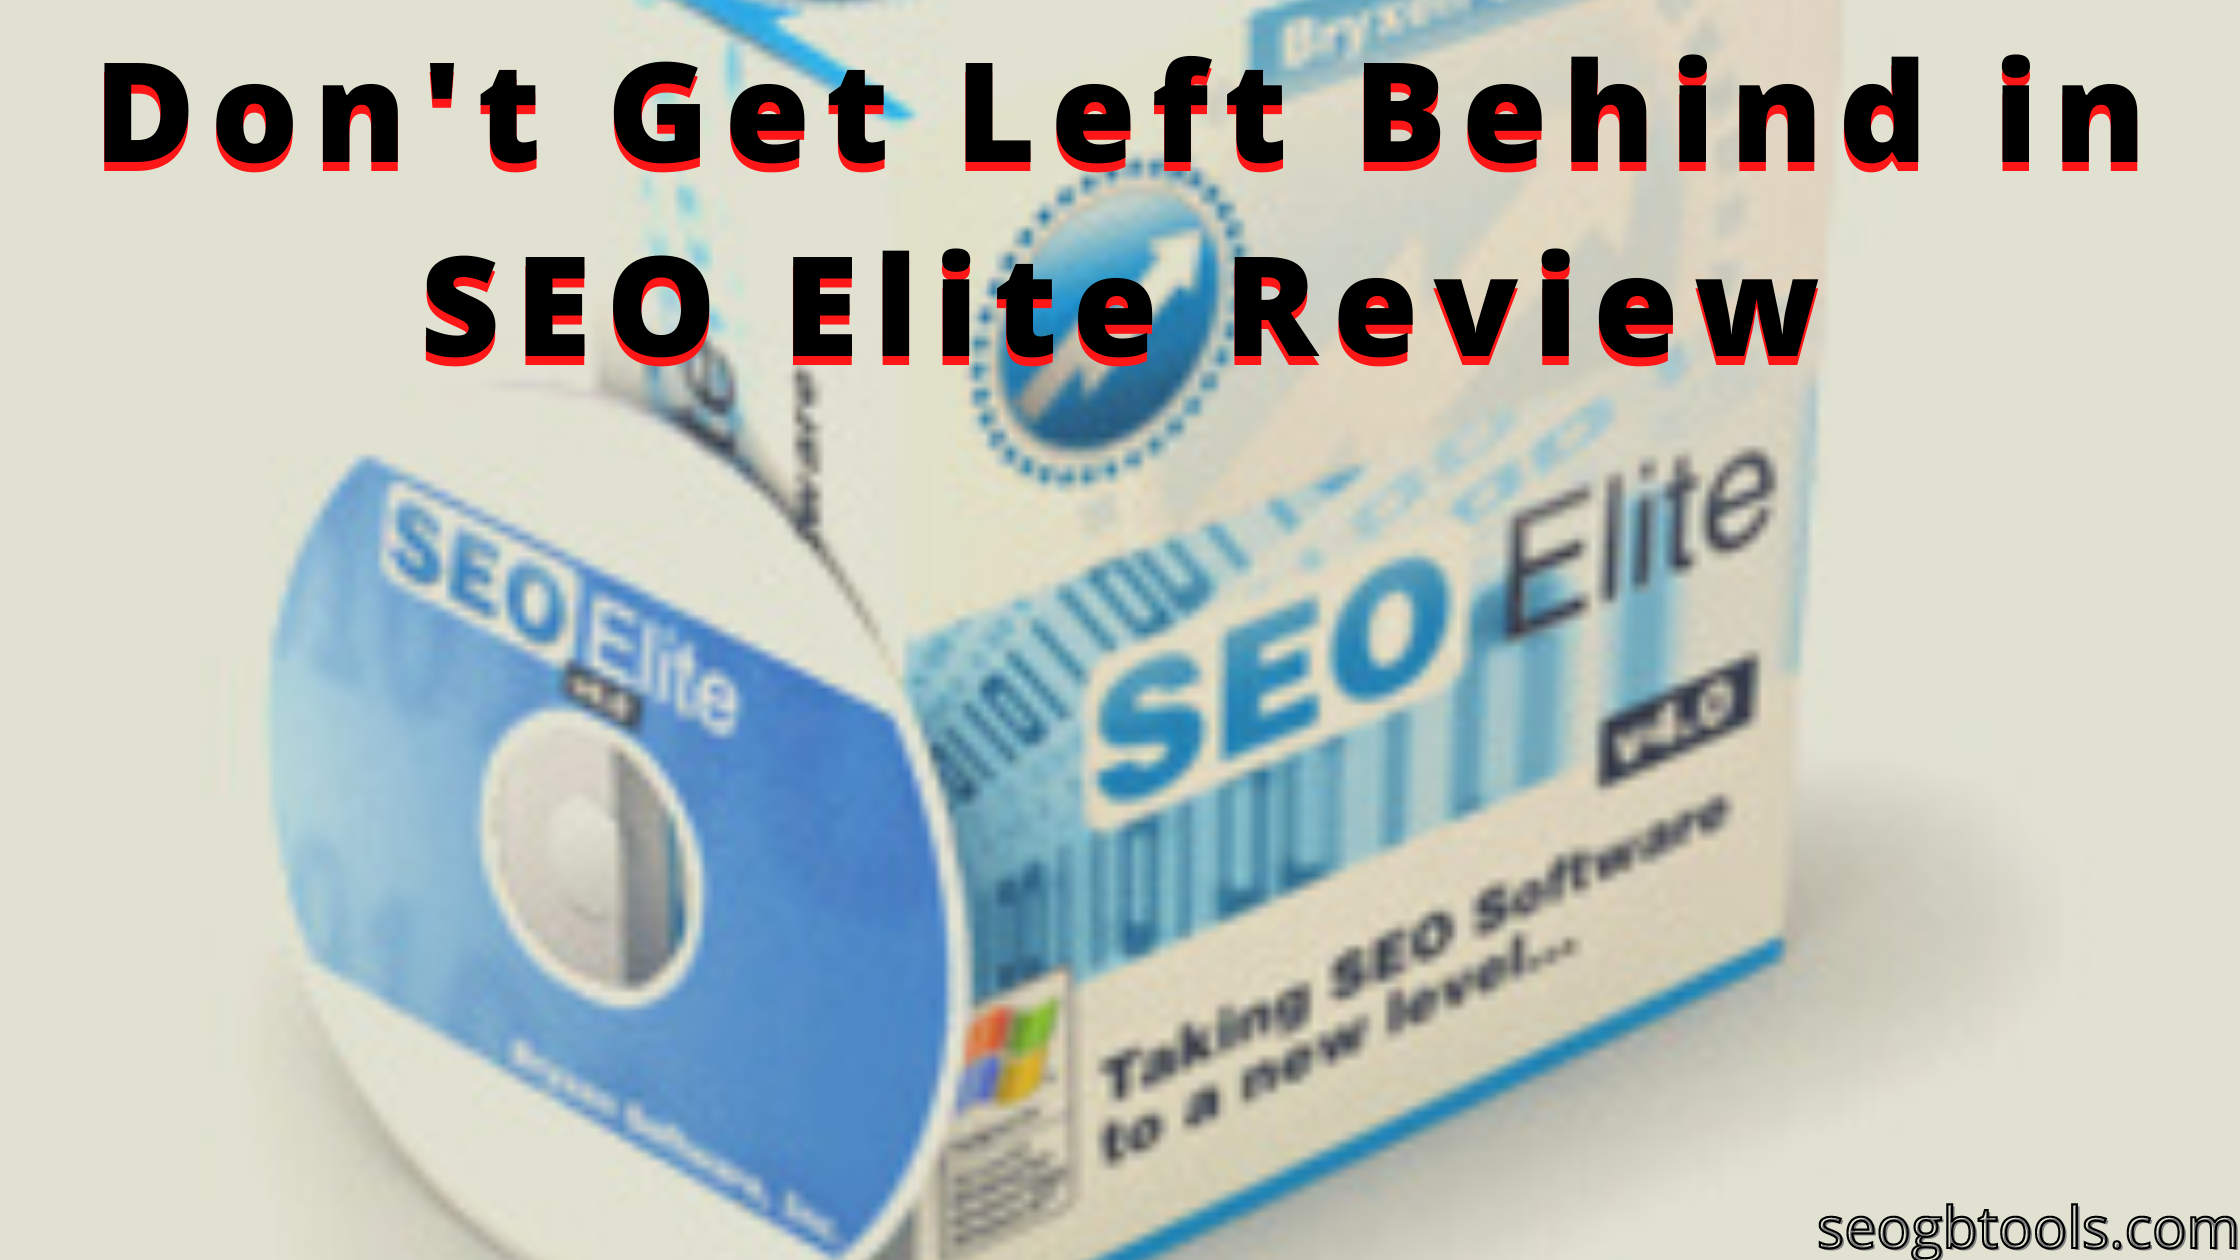 Don't Get Left Behind in SEO Elite Review